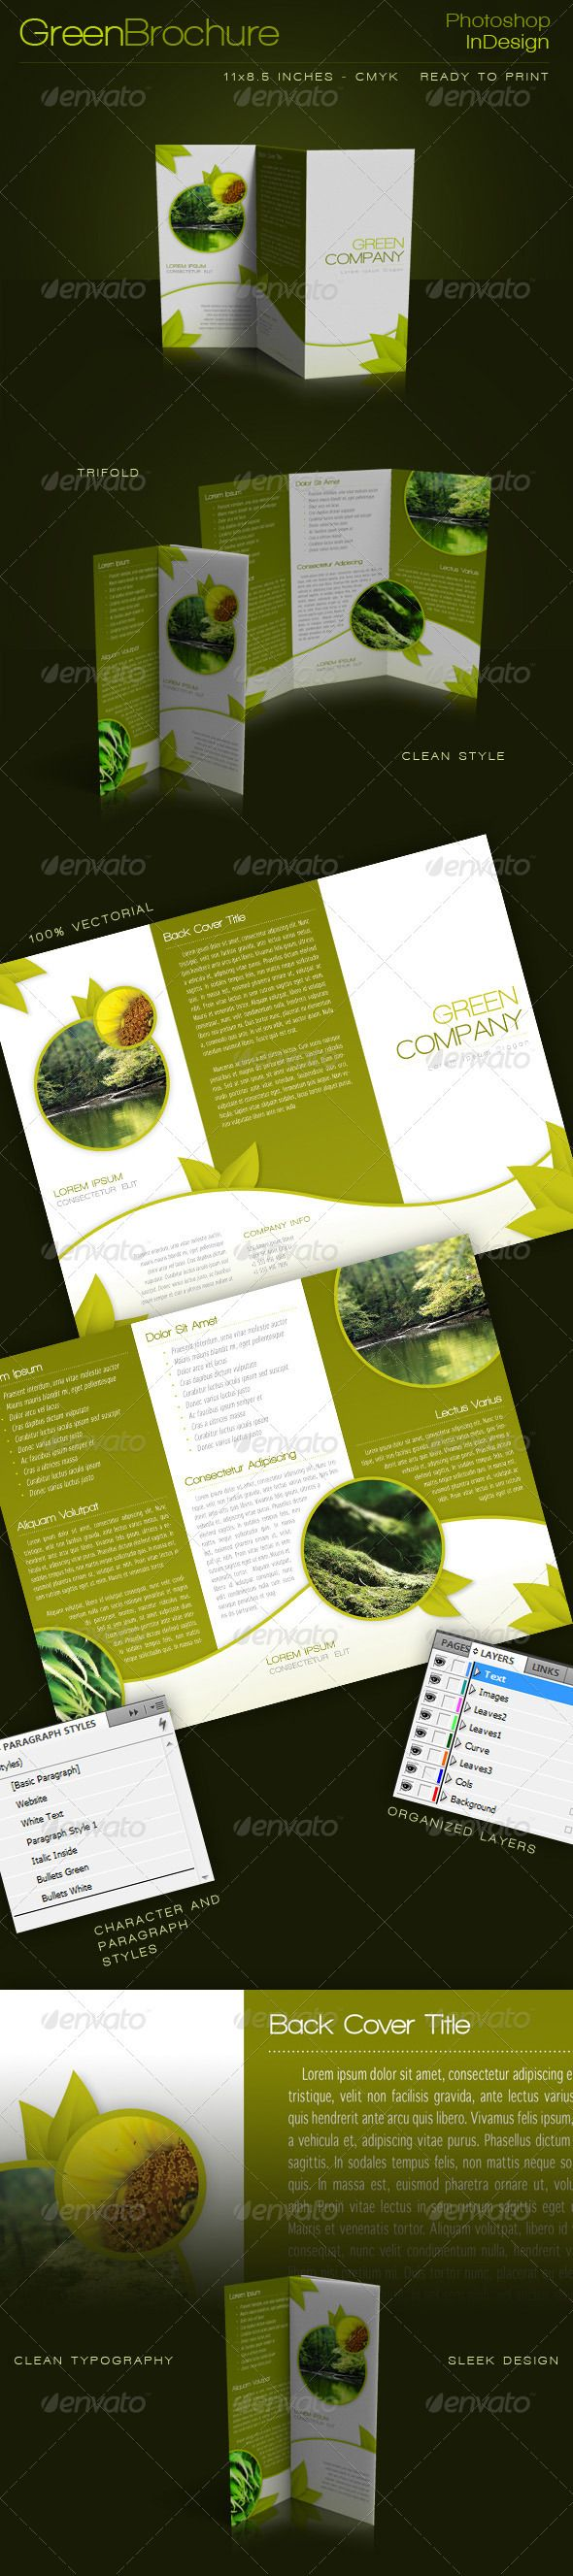 green trifold brochure indesign template pinterest indesign